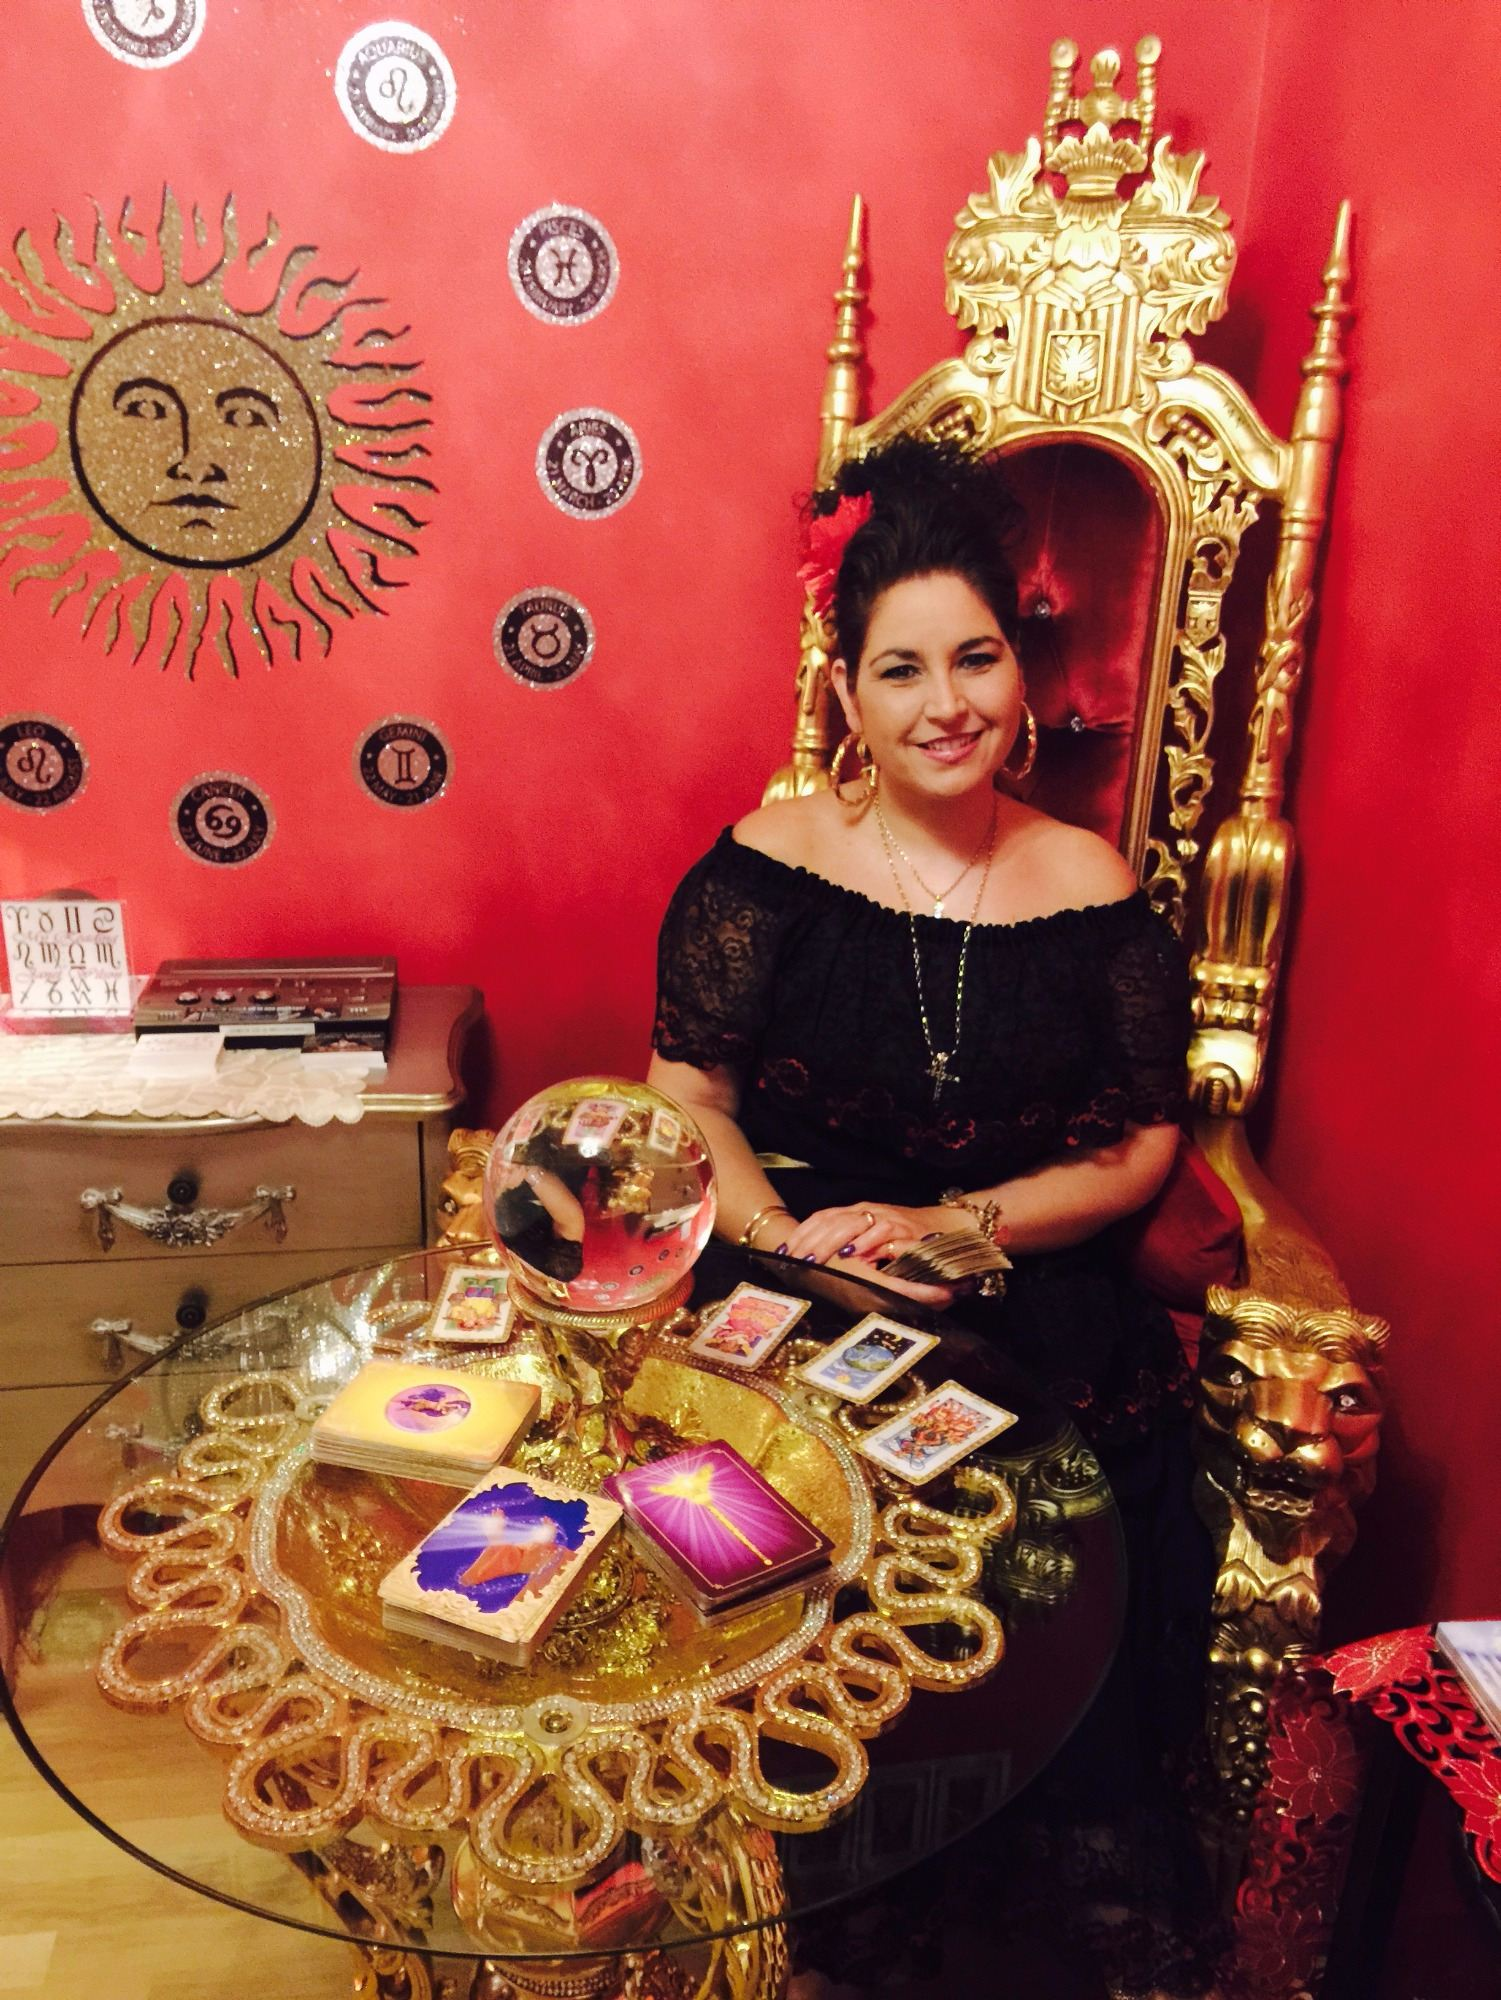 No1 Tarot Card Reading And More With Romany